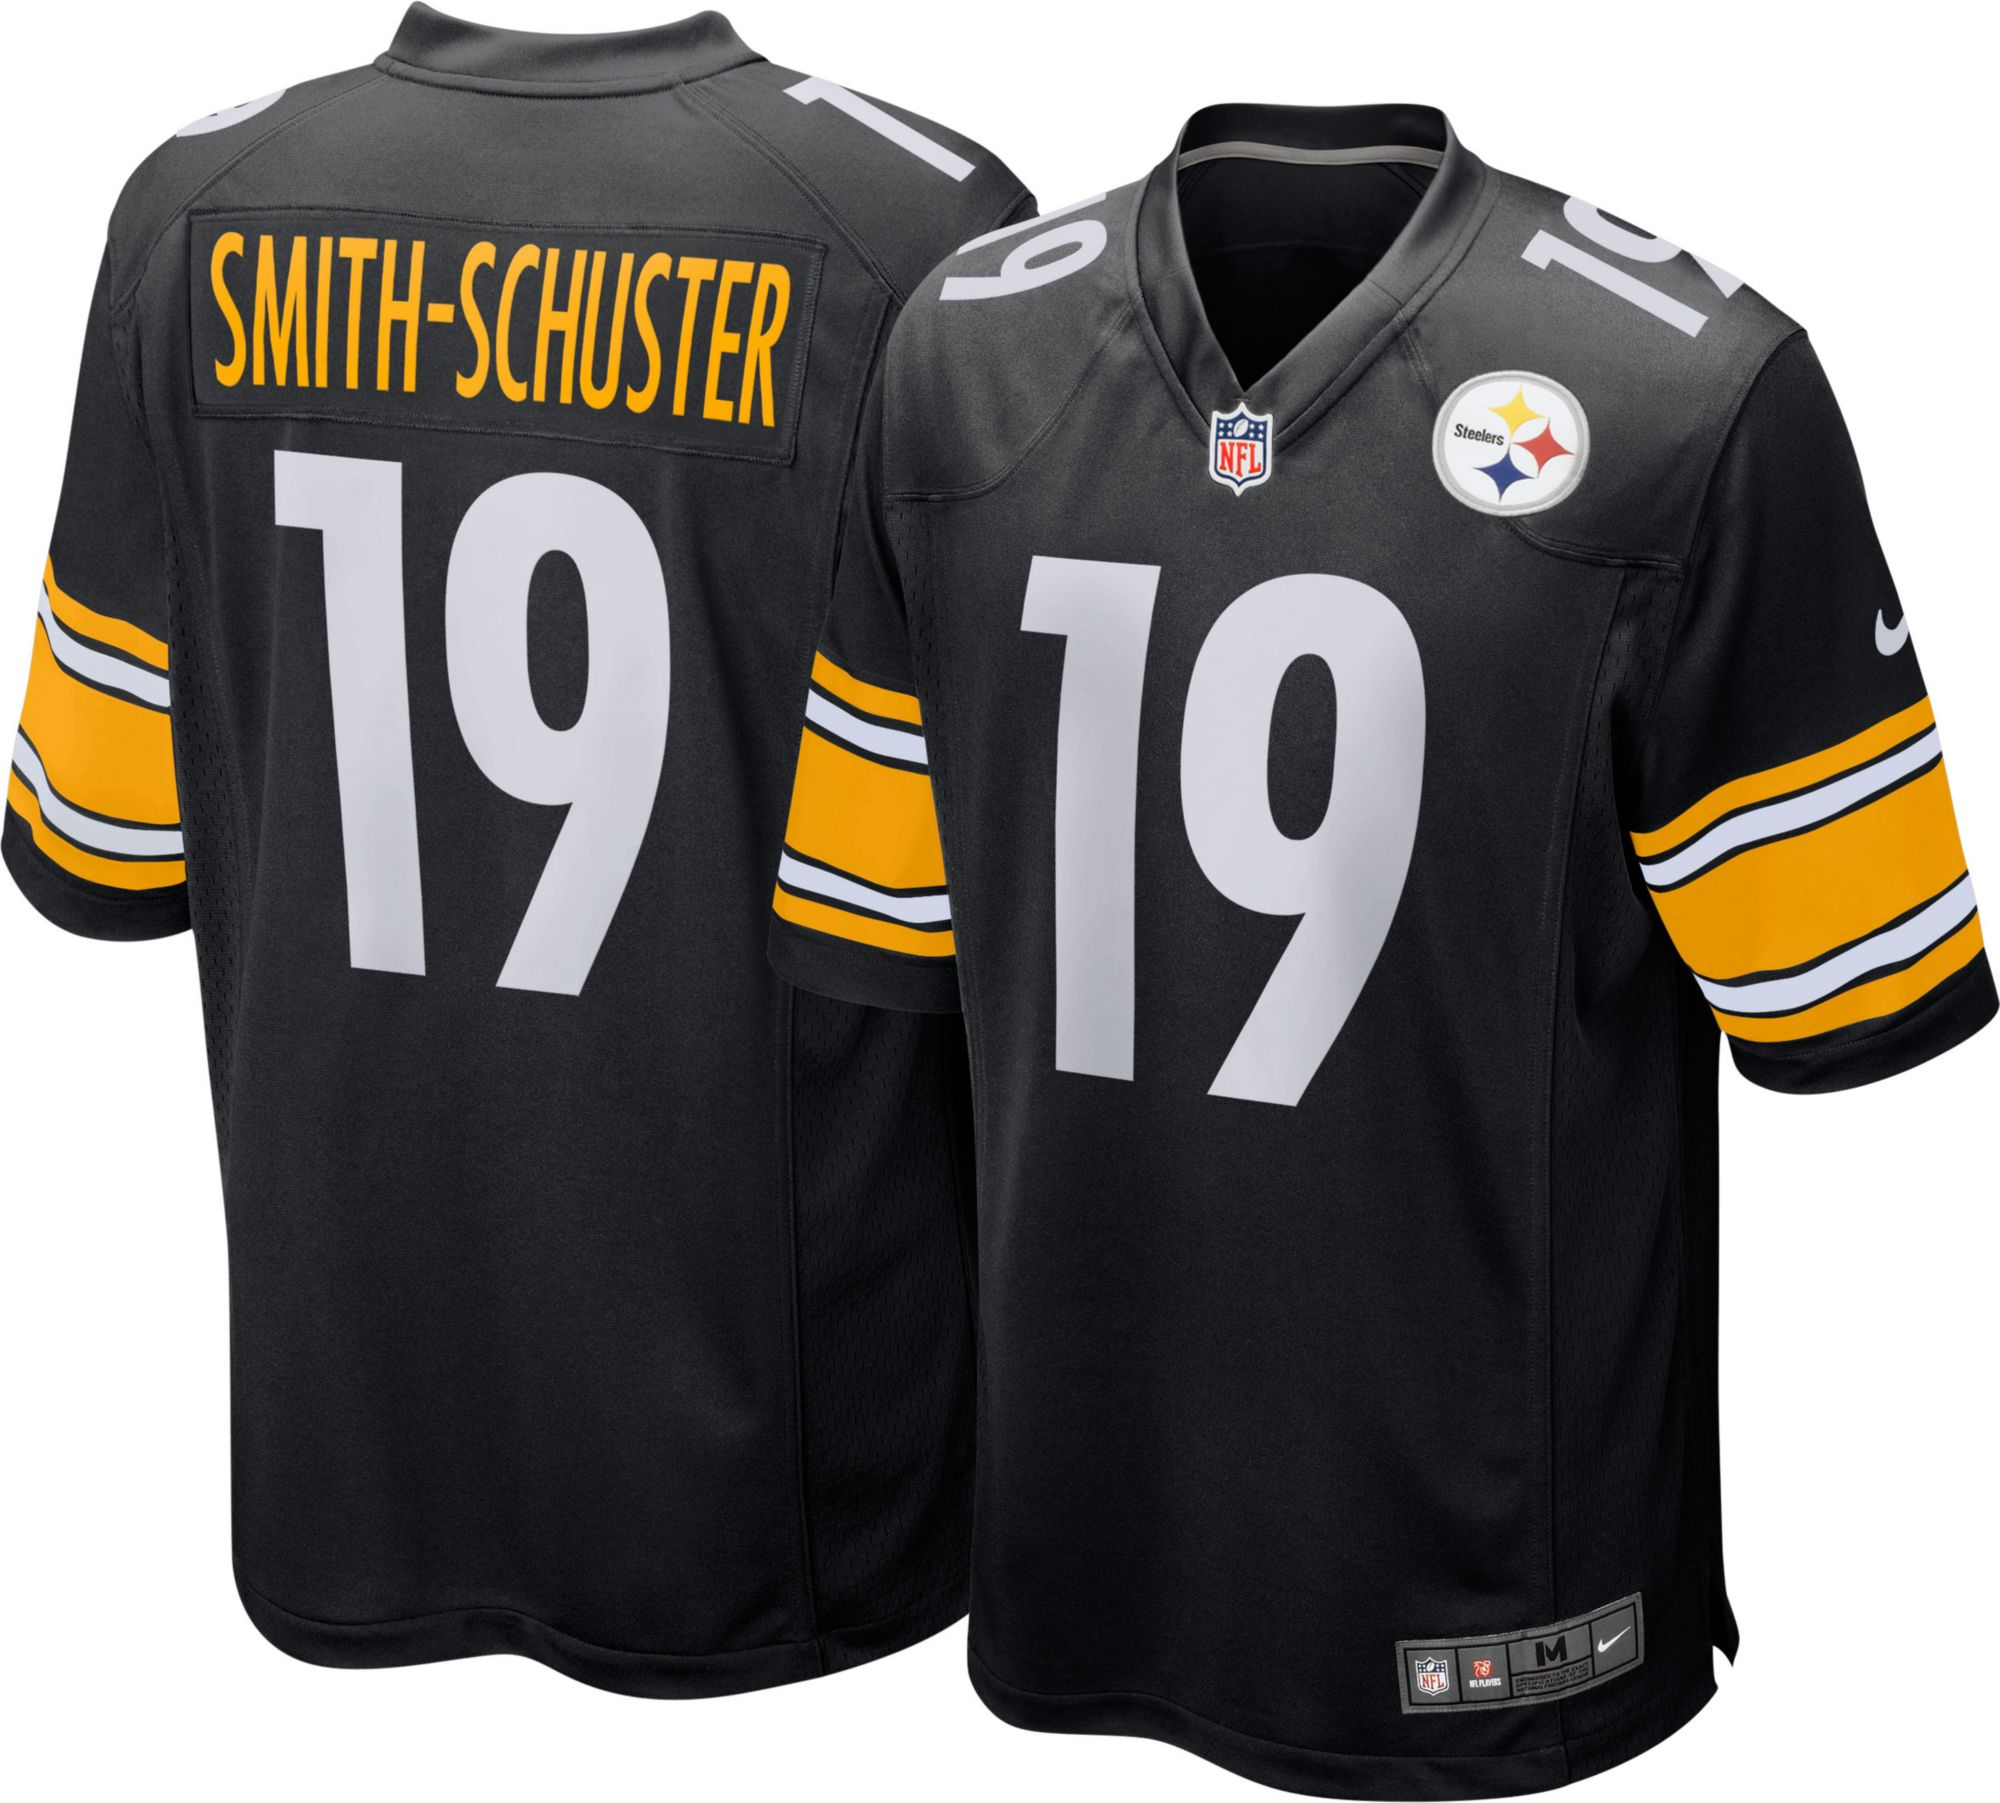 juju smith schuster youth color rush jersey